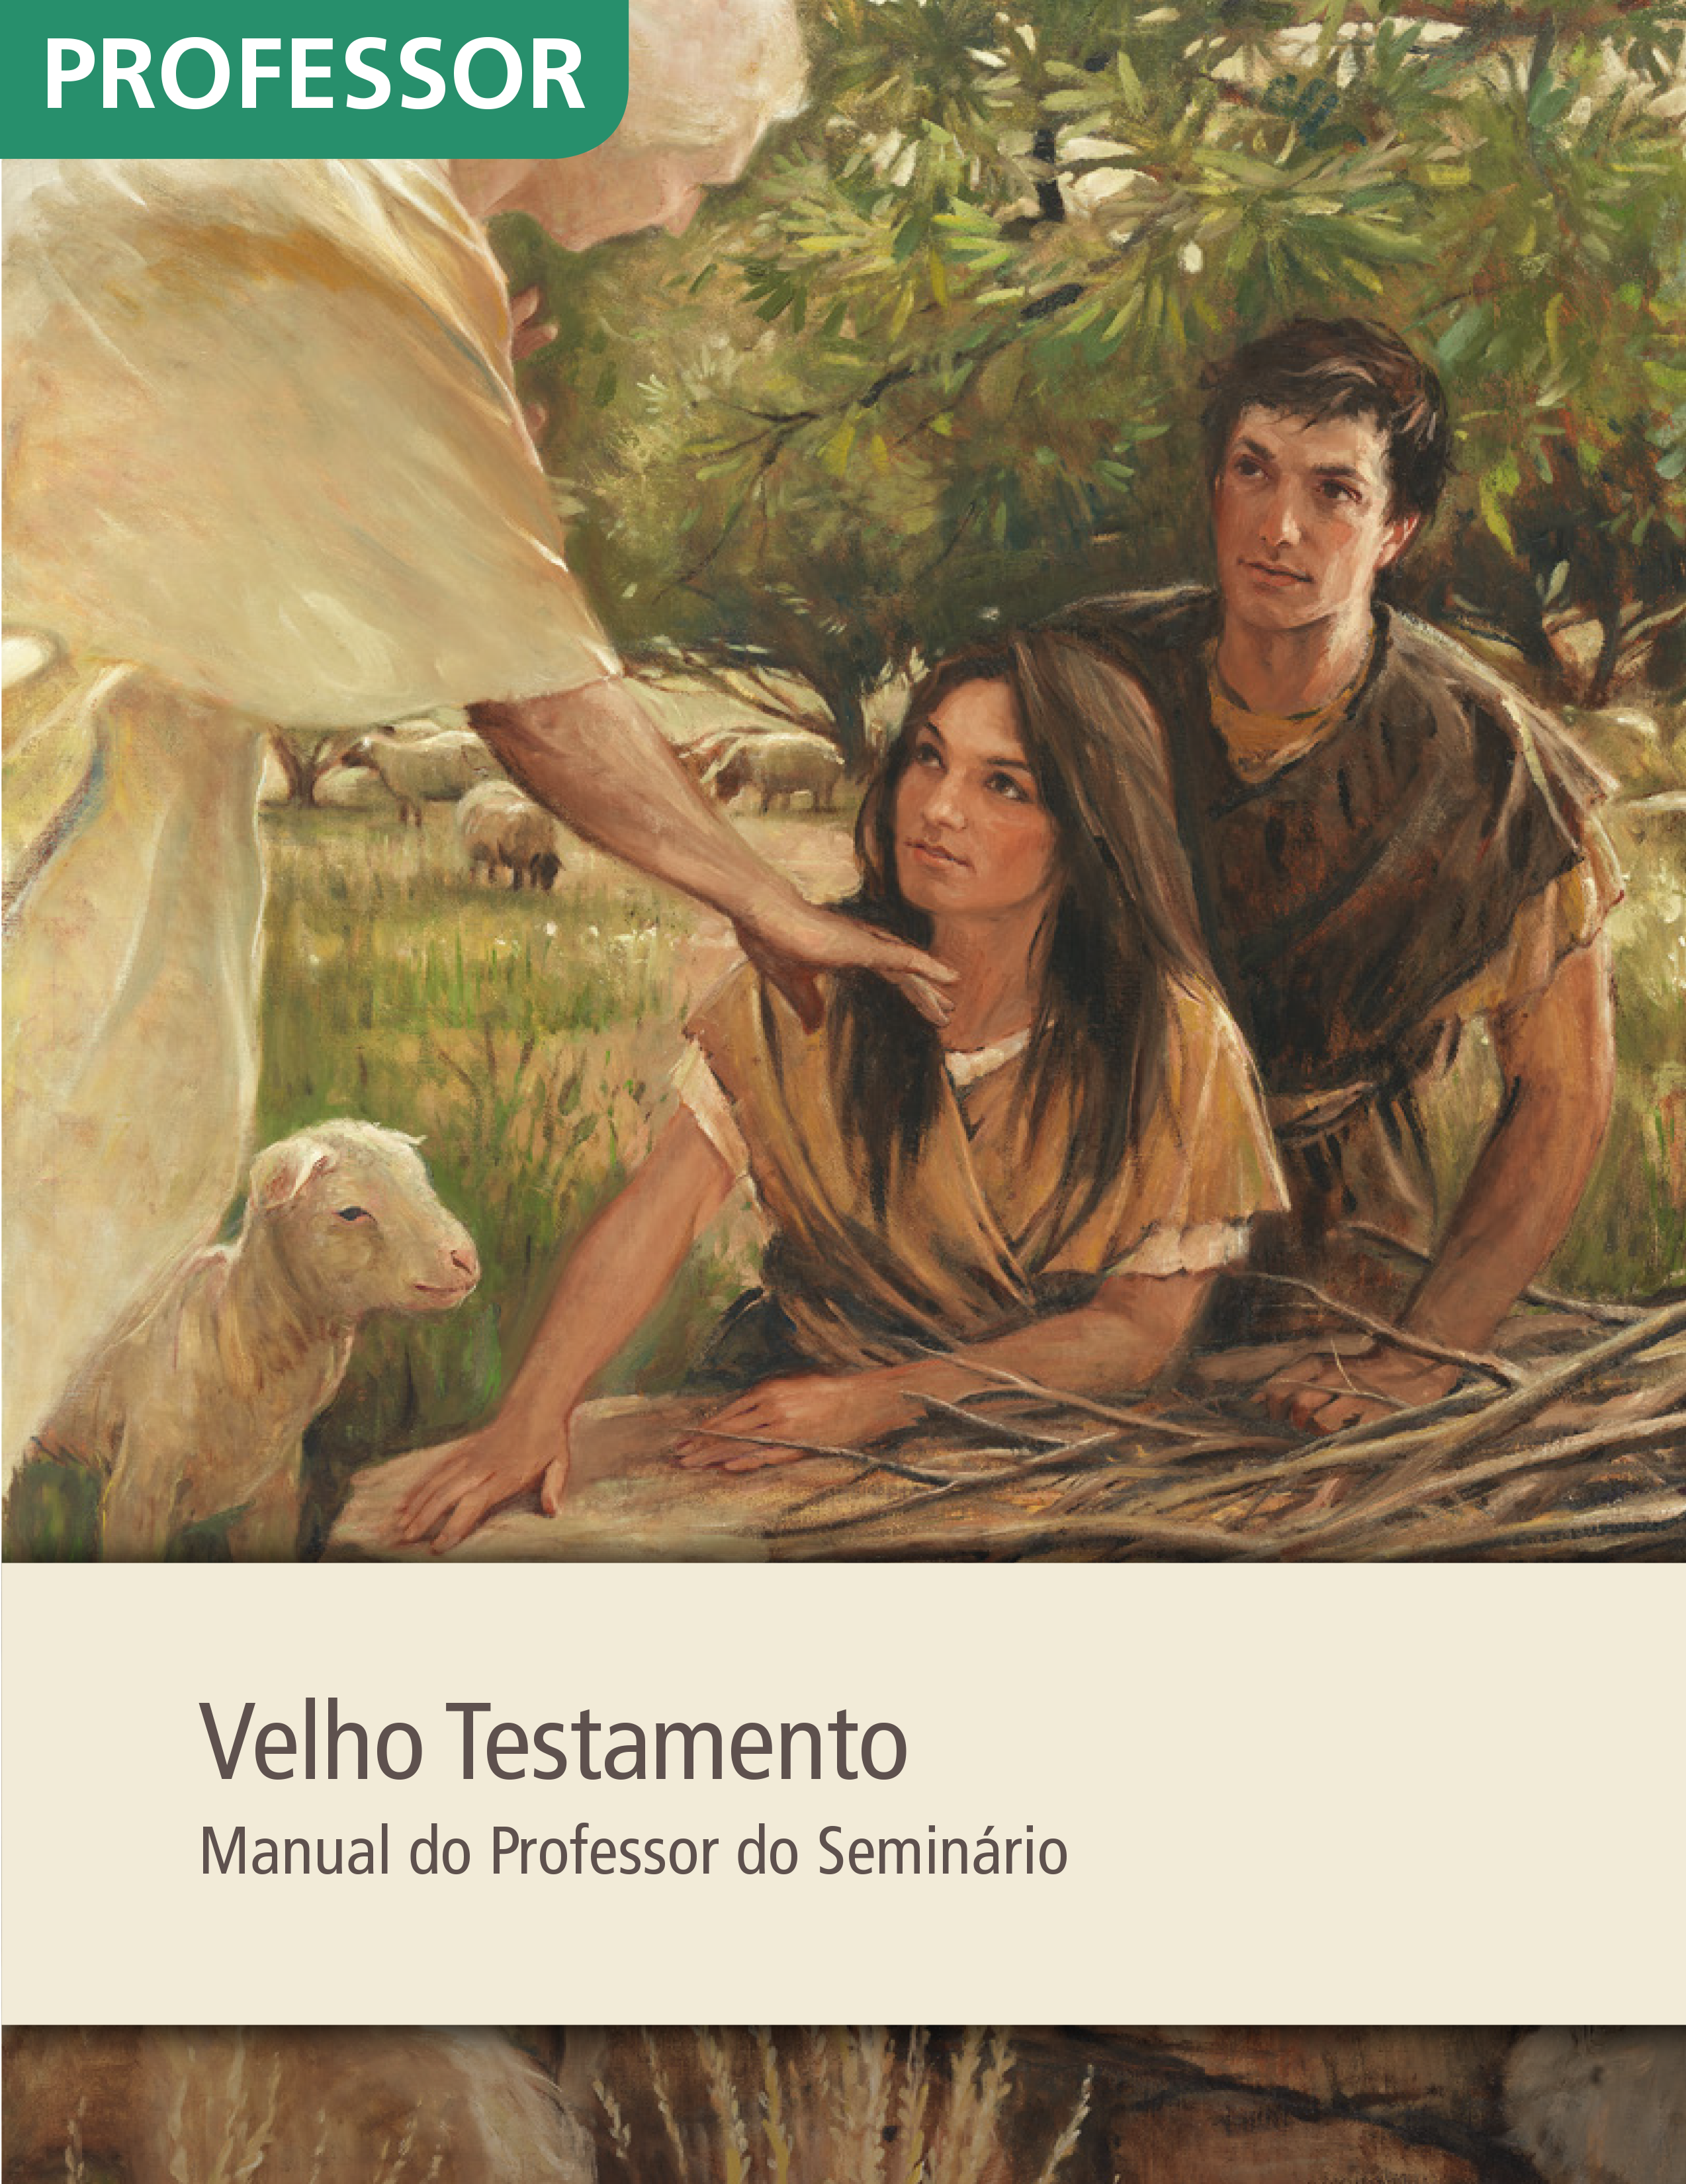 Velho Testamento — Manual do Professor do Seminário